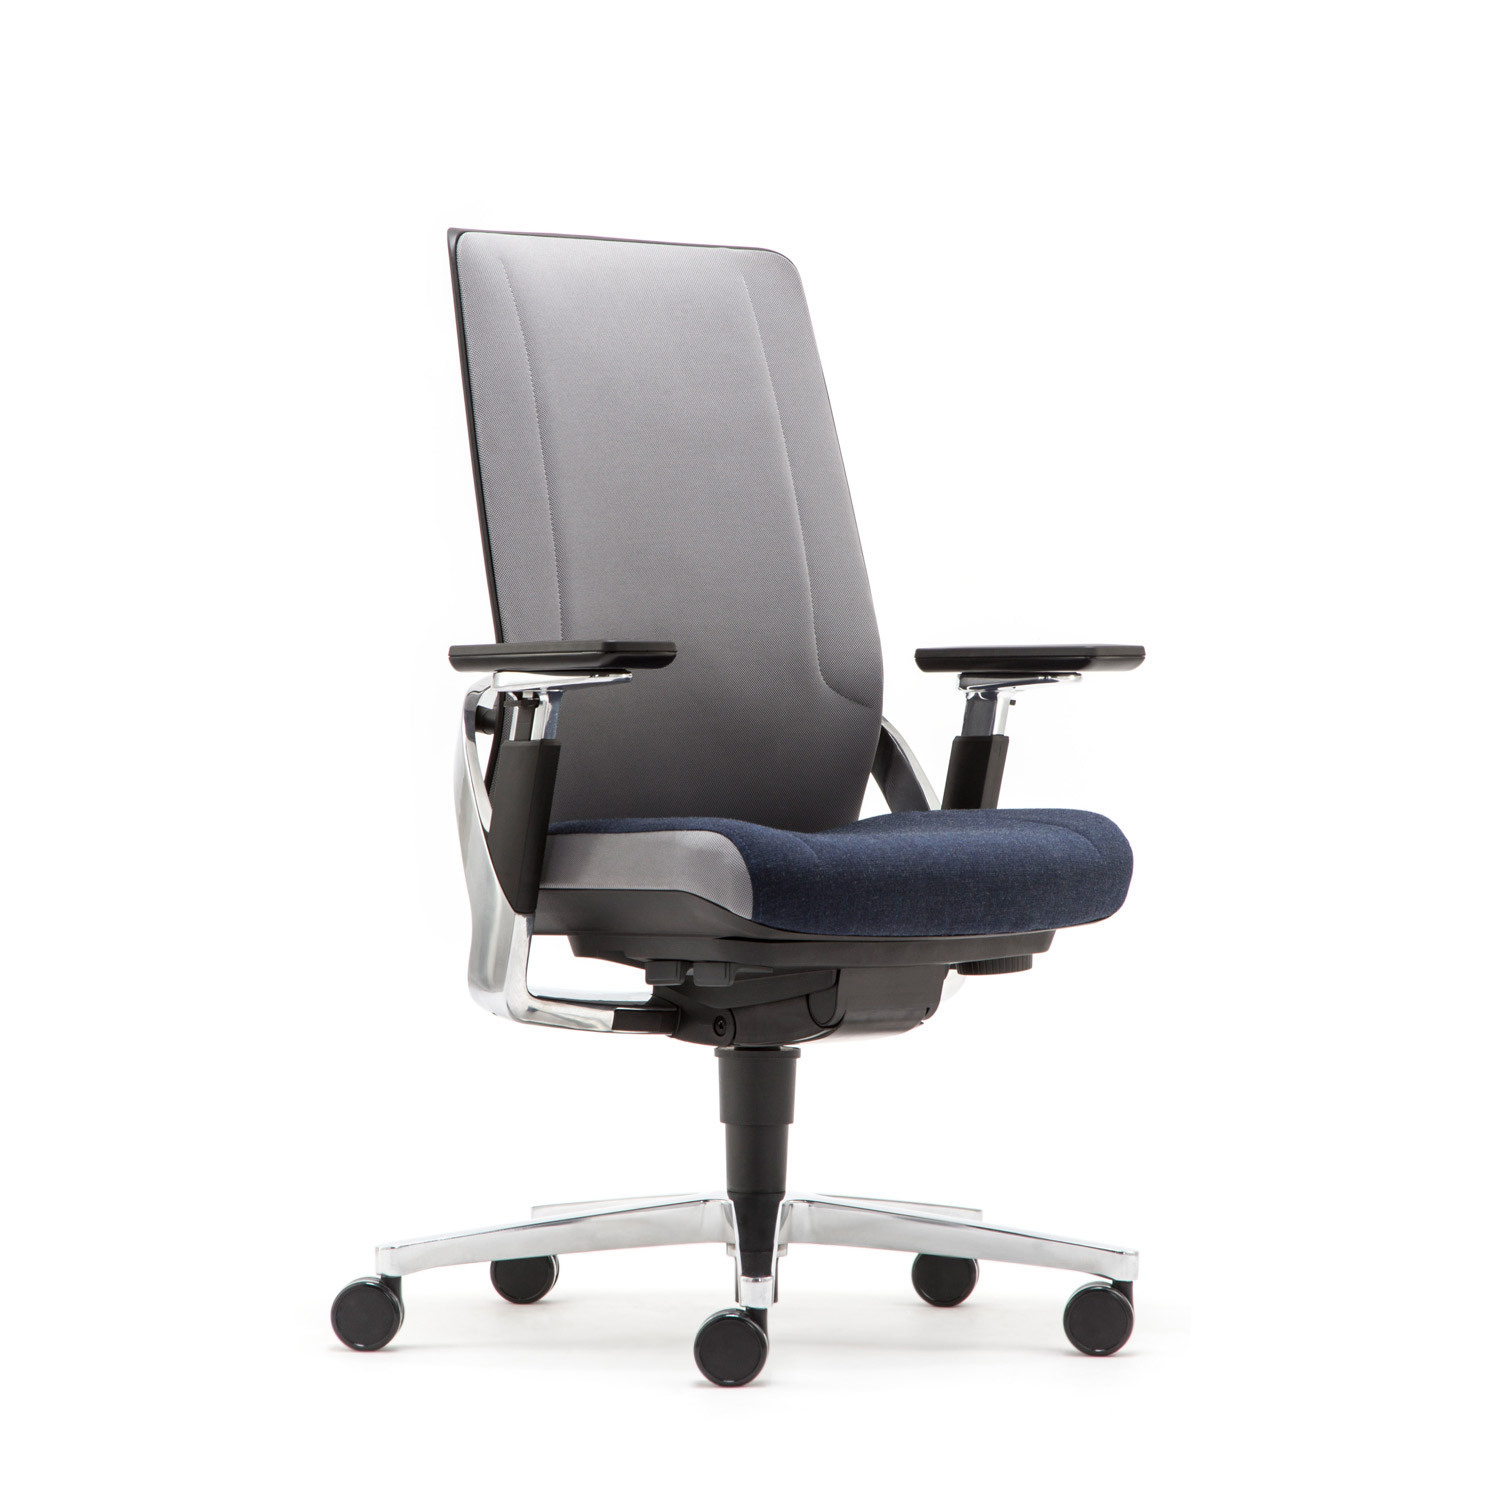 i-Workchair Desk Chair